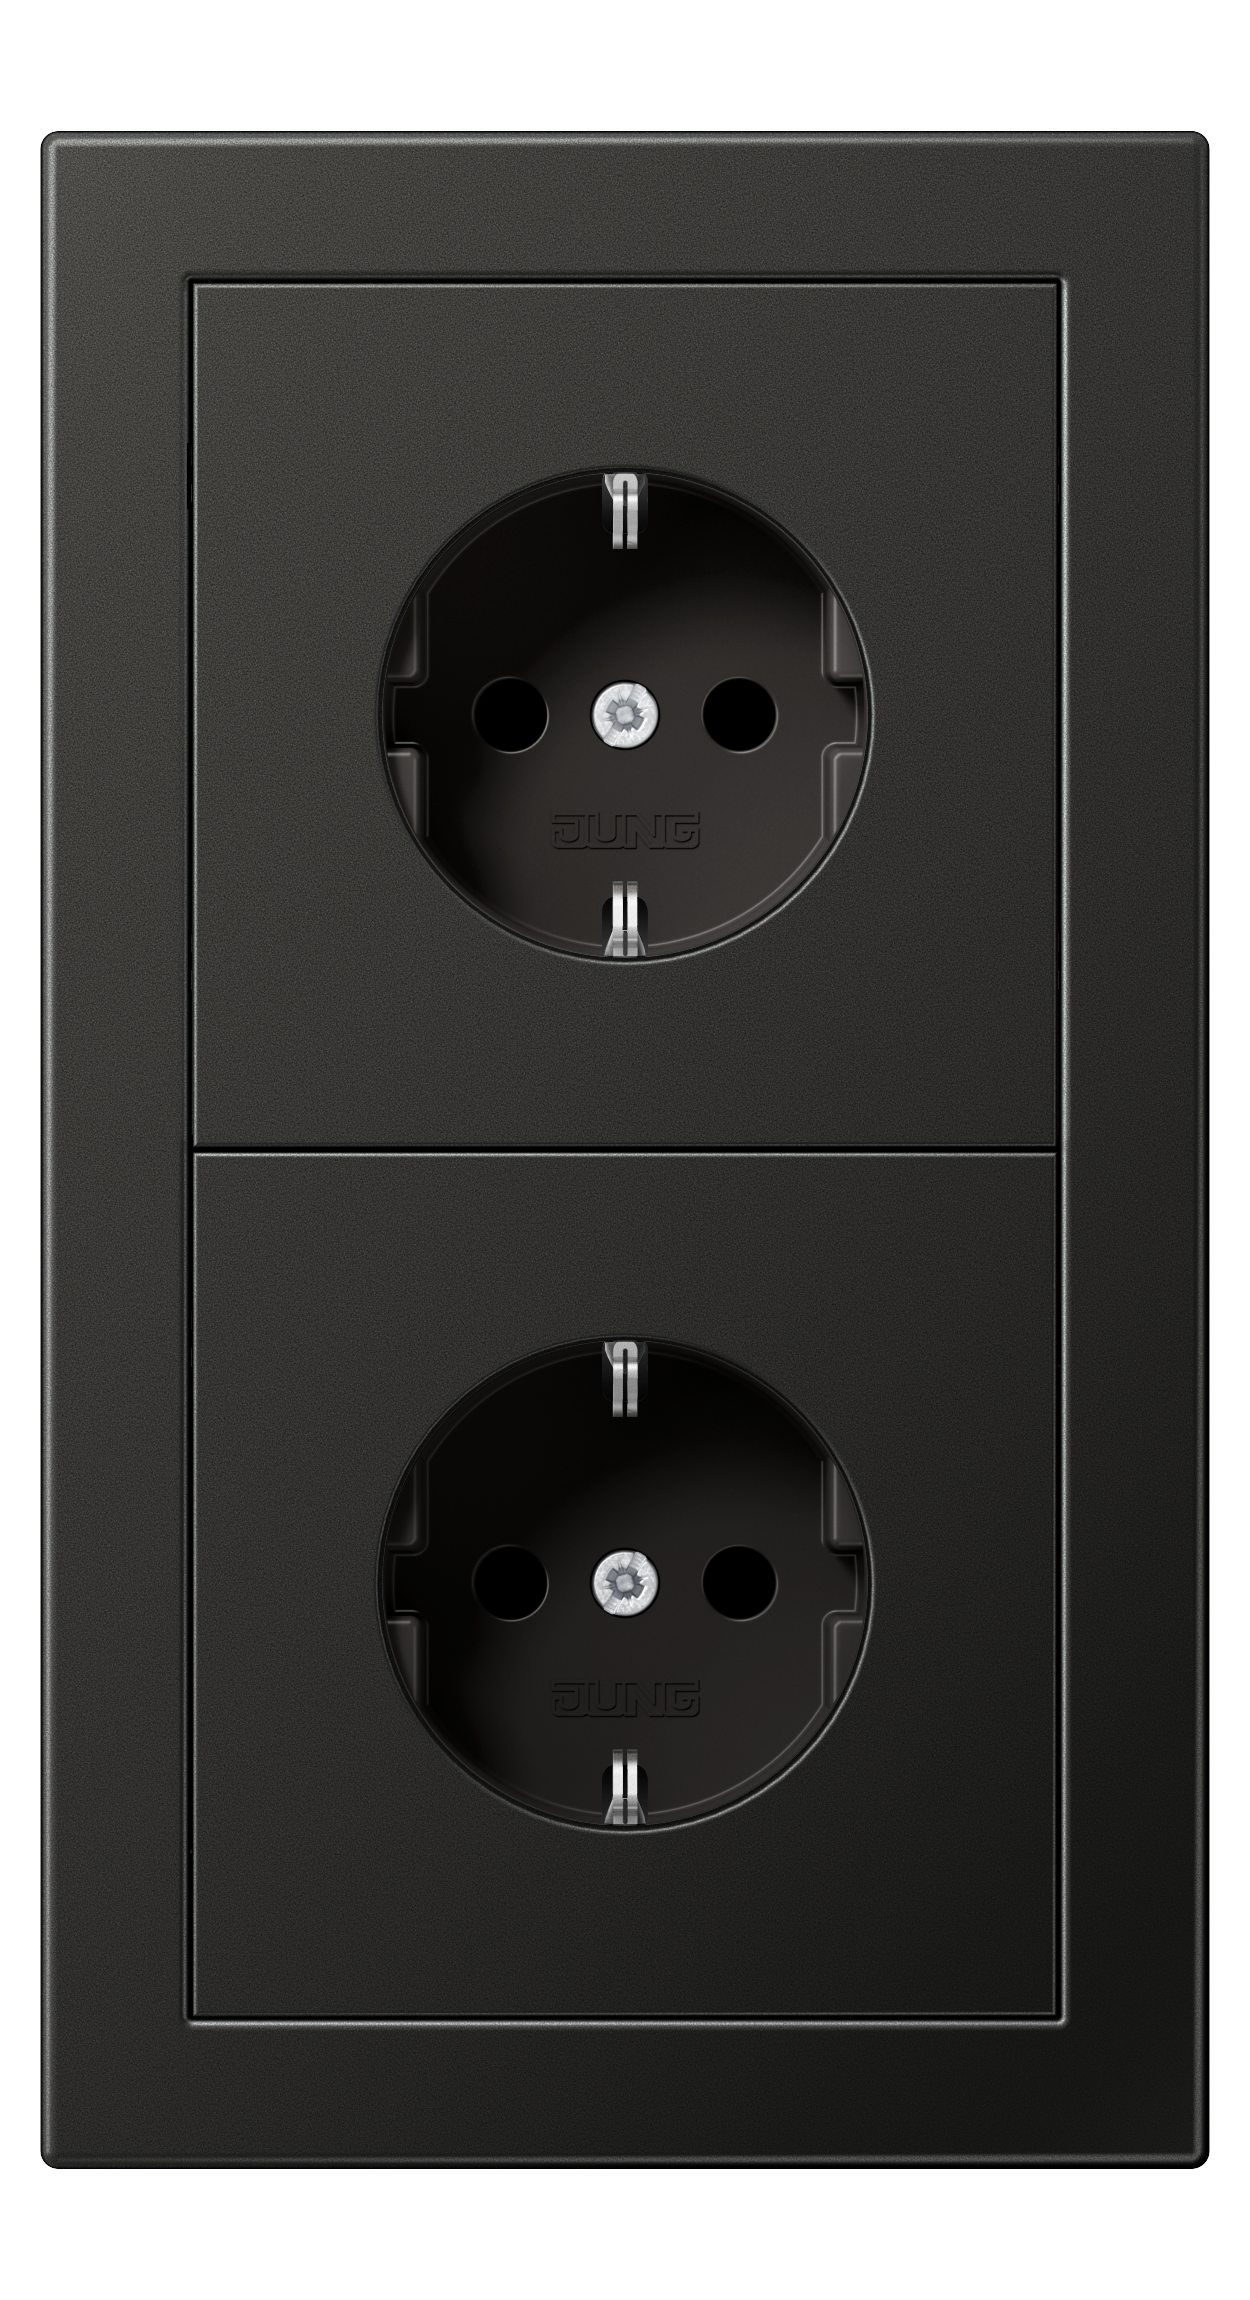 JUNG_LS_Design_anthracite_socket-socket